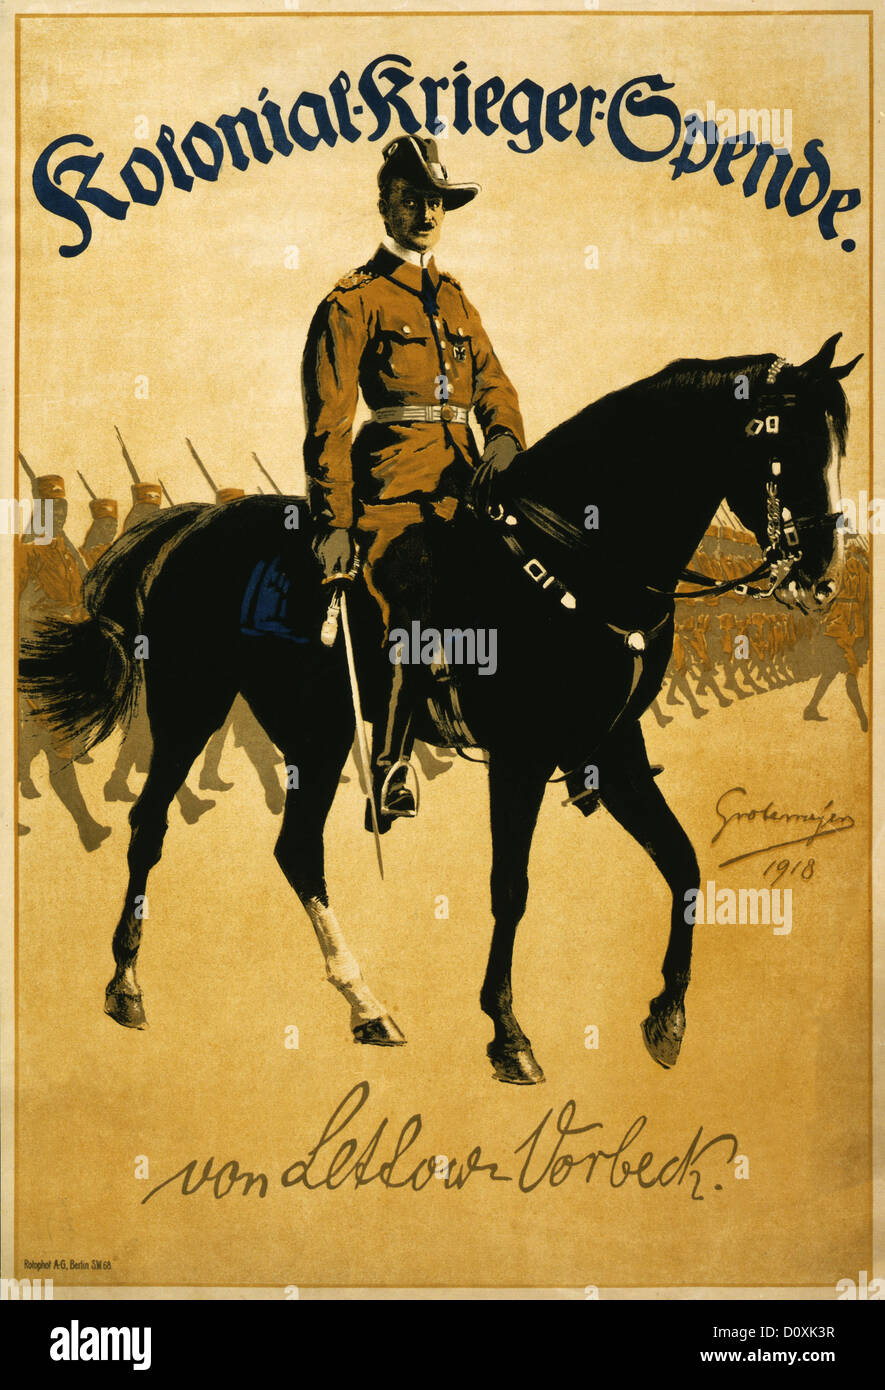 Germany, German, propaganda, poster, General, Paul Emil von Lettow-Vorbeck, horseback, African, soldiers, Colonial - Stock Image